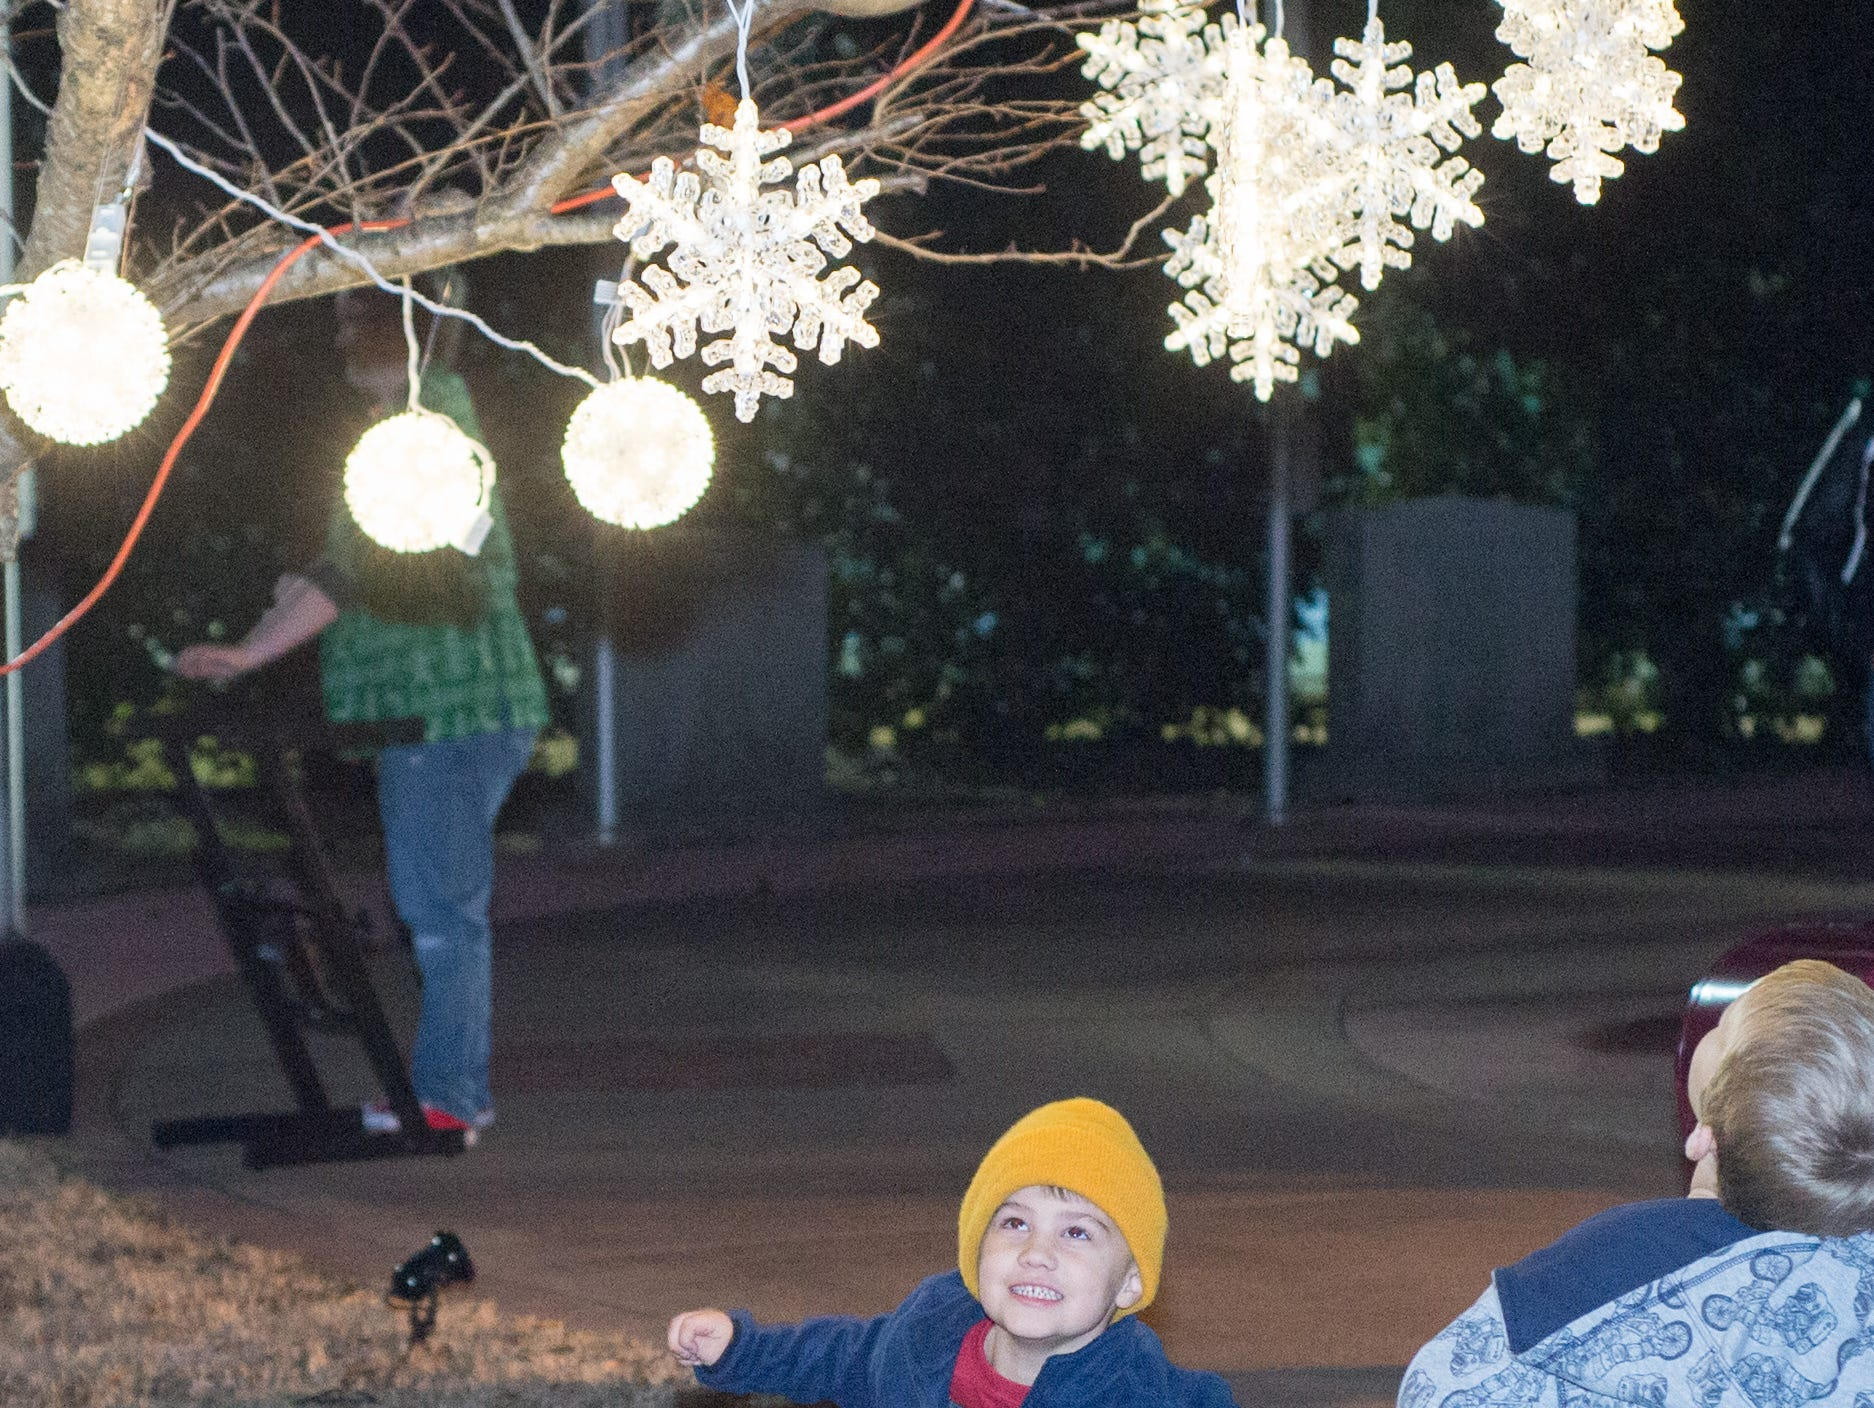 Kids enjoy the lights while waiting for the main tree lighting during the Hendersonville HolidayFest Annual Tree Lighting Ceremony at Memorial Park on Sunday, Nov. 25.